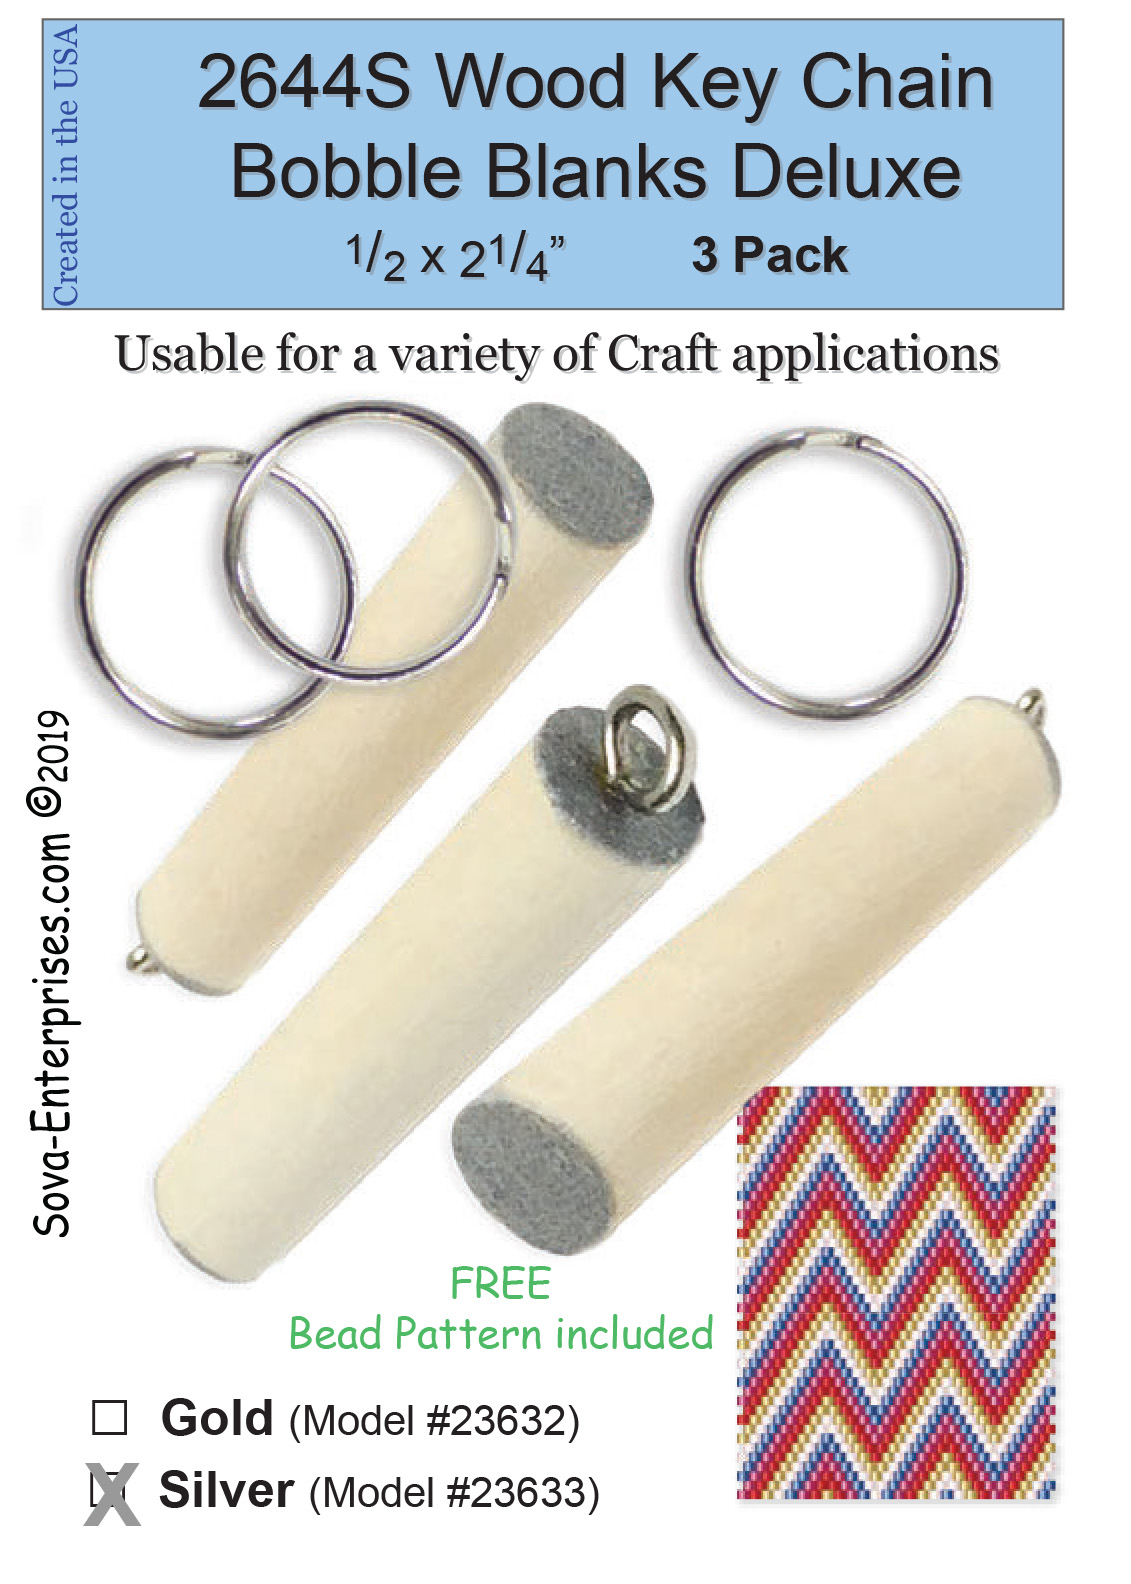 "Wood Key Chain Bobble Blanks Silver 1/2"" Deluxe 3 Pack 2644SD"